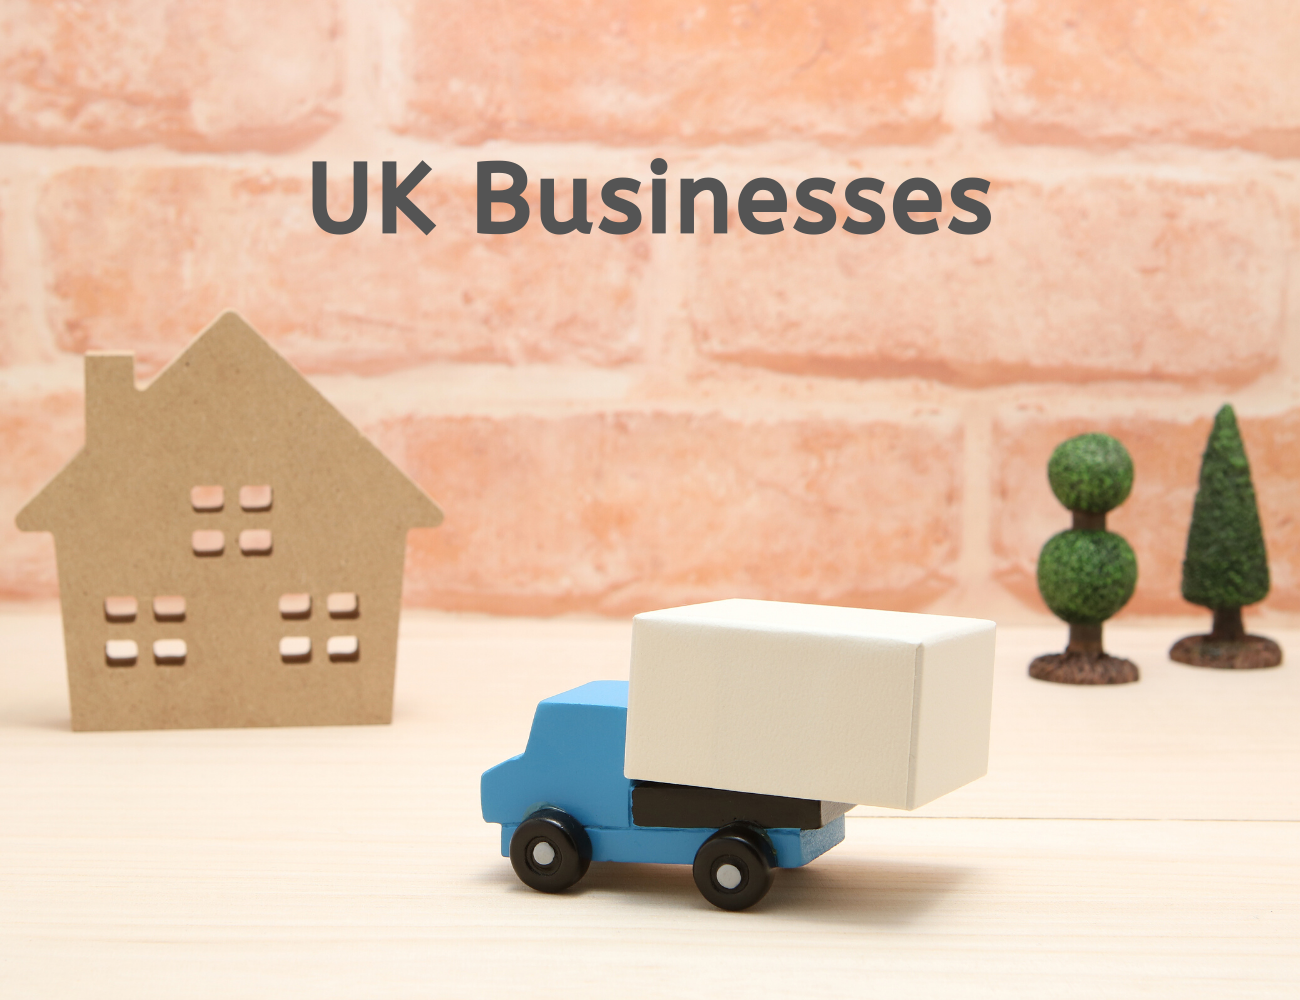 """Model car delivering a parcel to a model house with trees and the words """"UK businesses""""."""